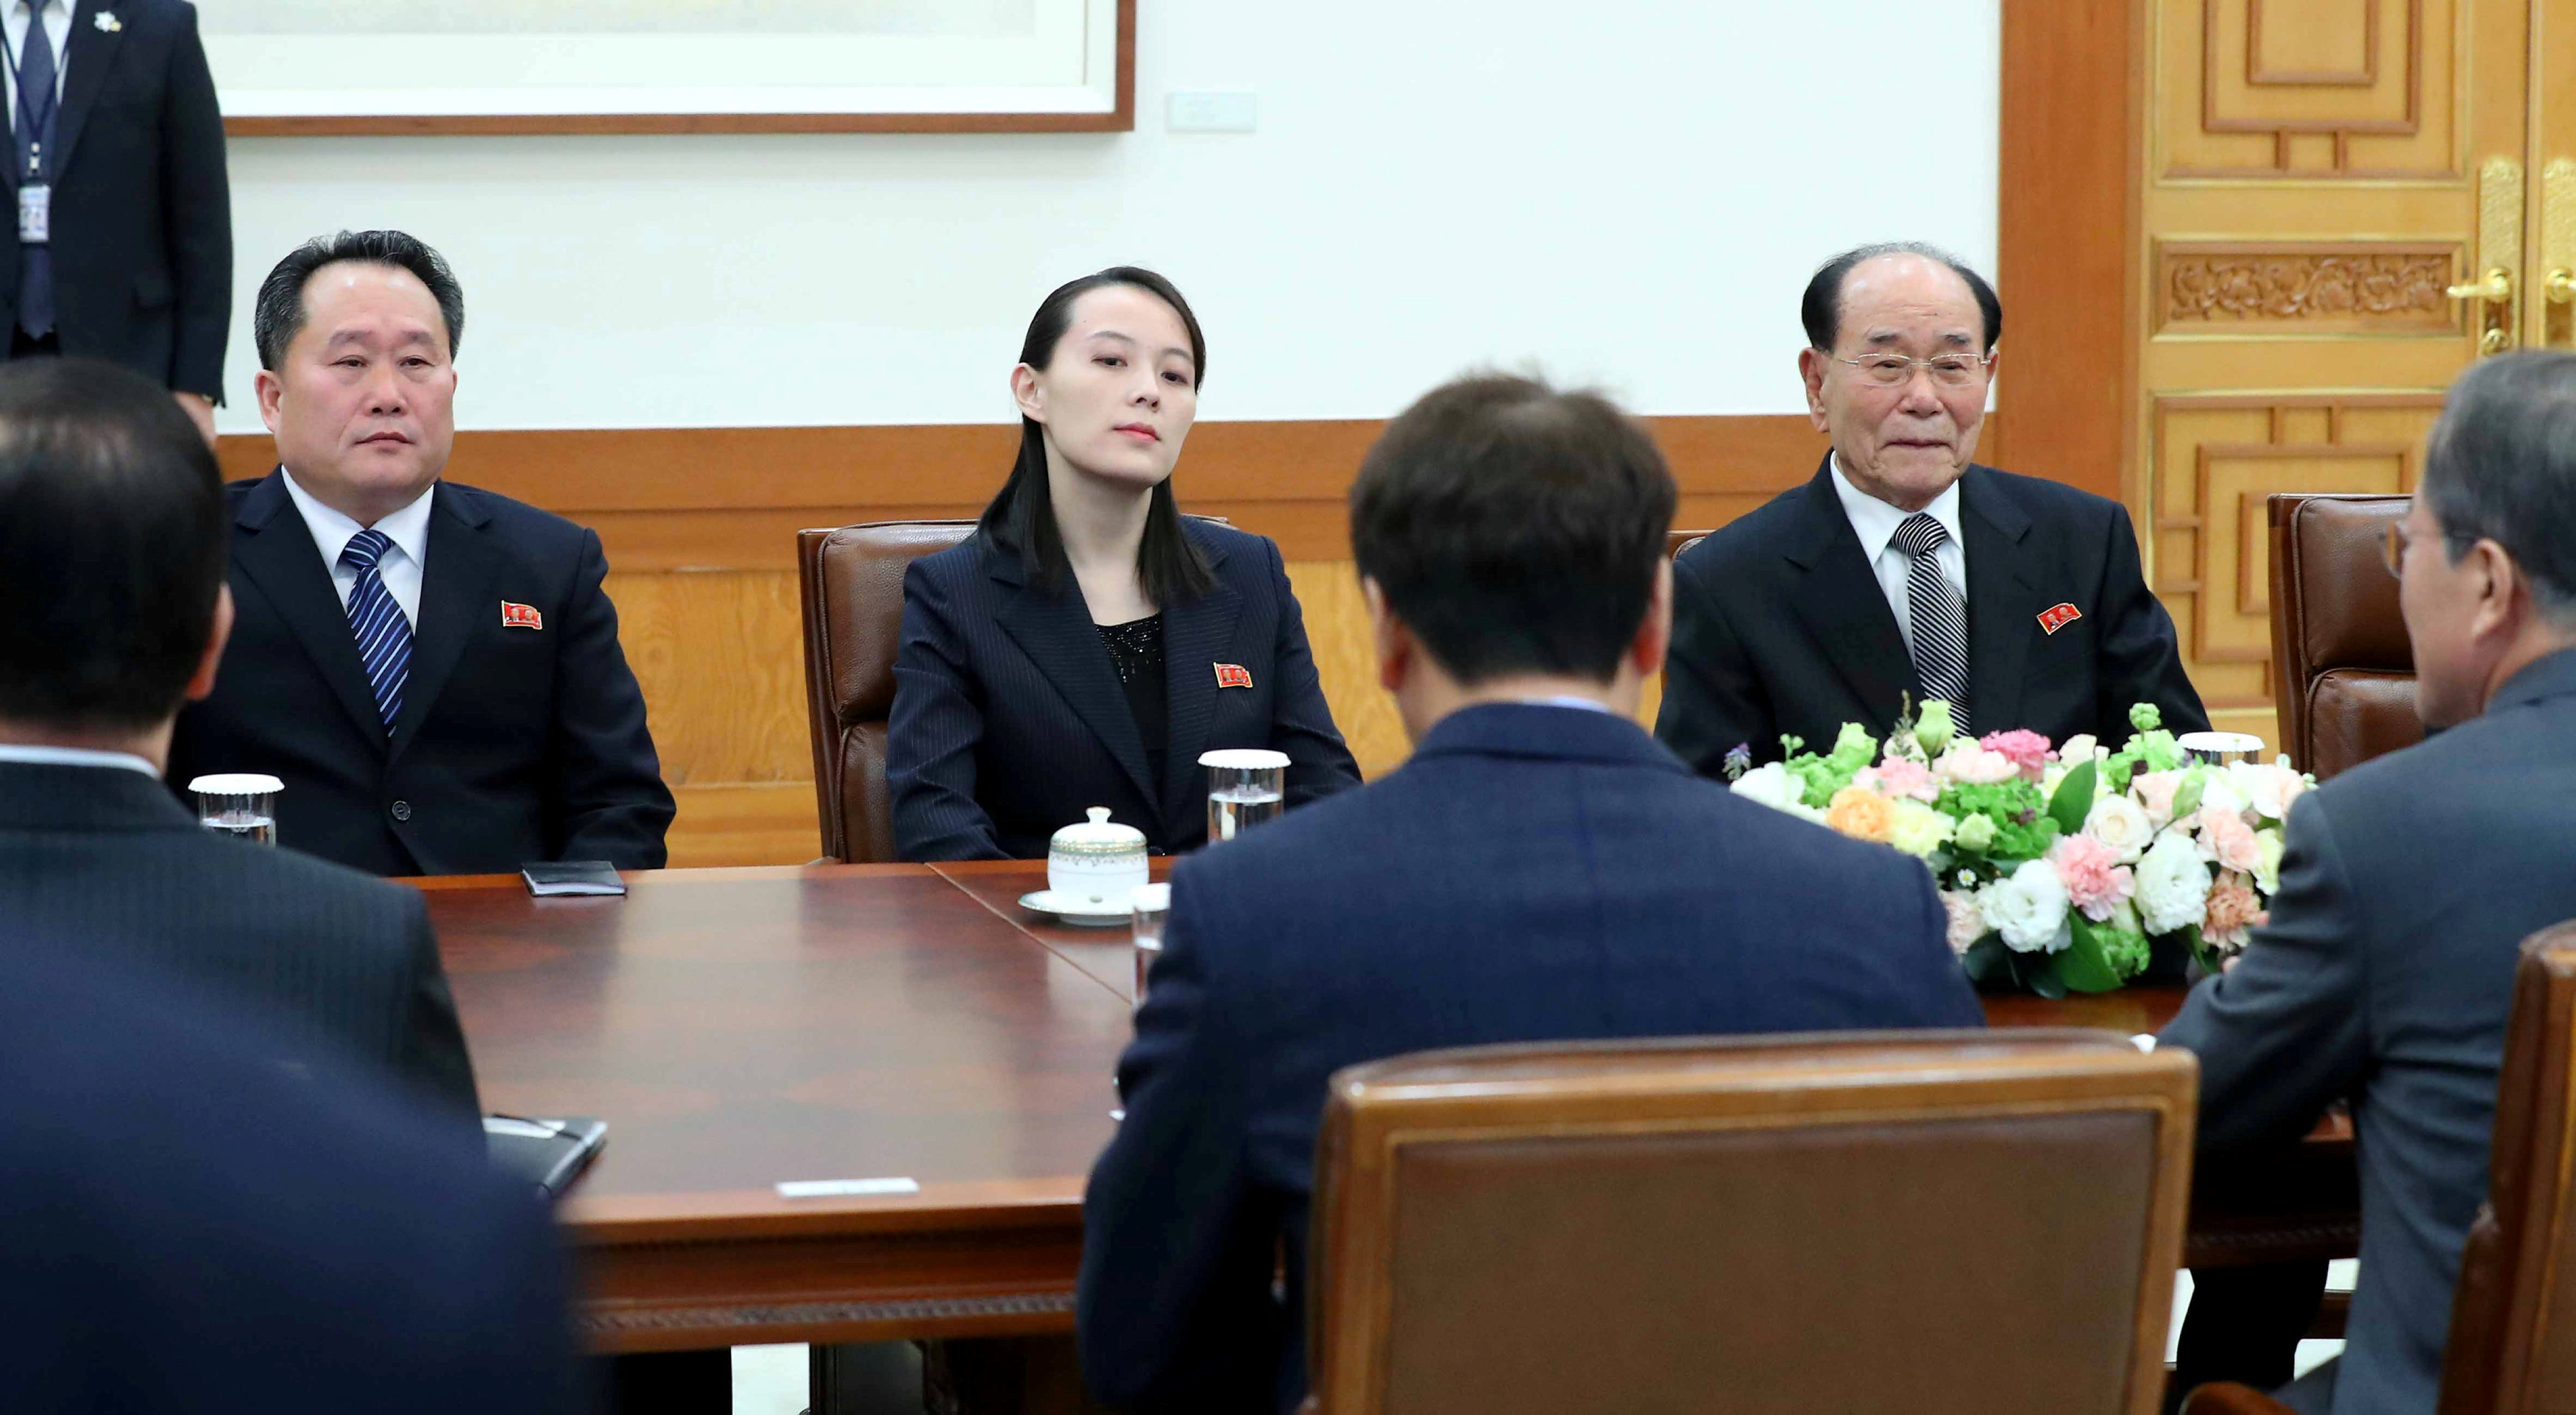 South Korean President Moon Jae-in talks with President of the Presidium of the Supreme People's Assembly of North Korea Kim Yong-nam and Kim Yo-jong, the sister of North Korea's leader Kim Jong-un.